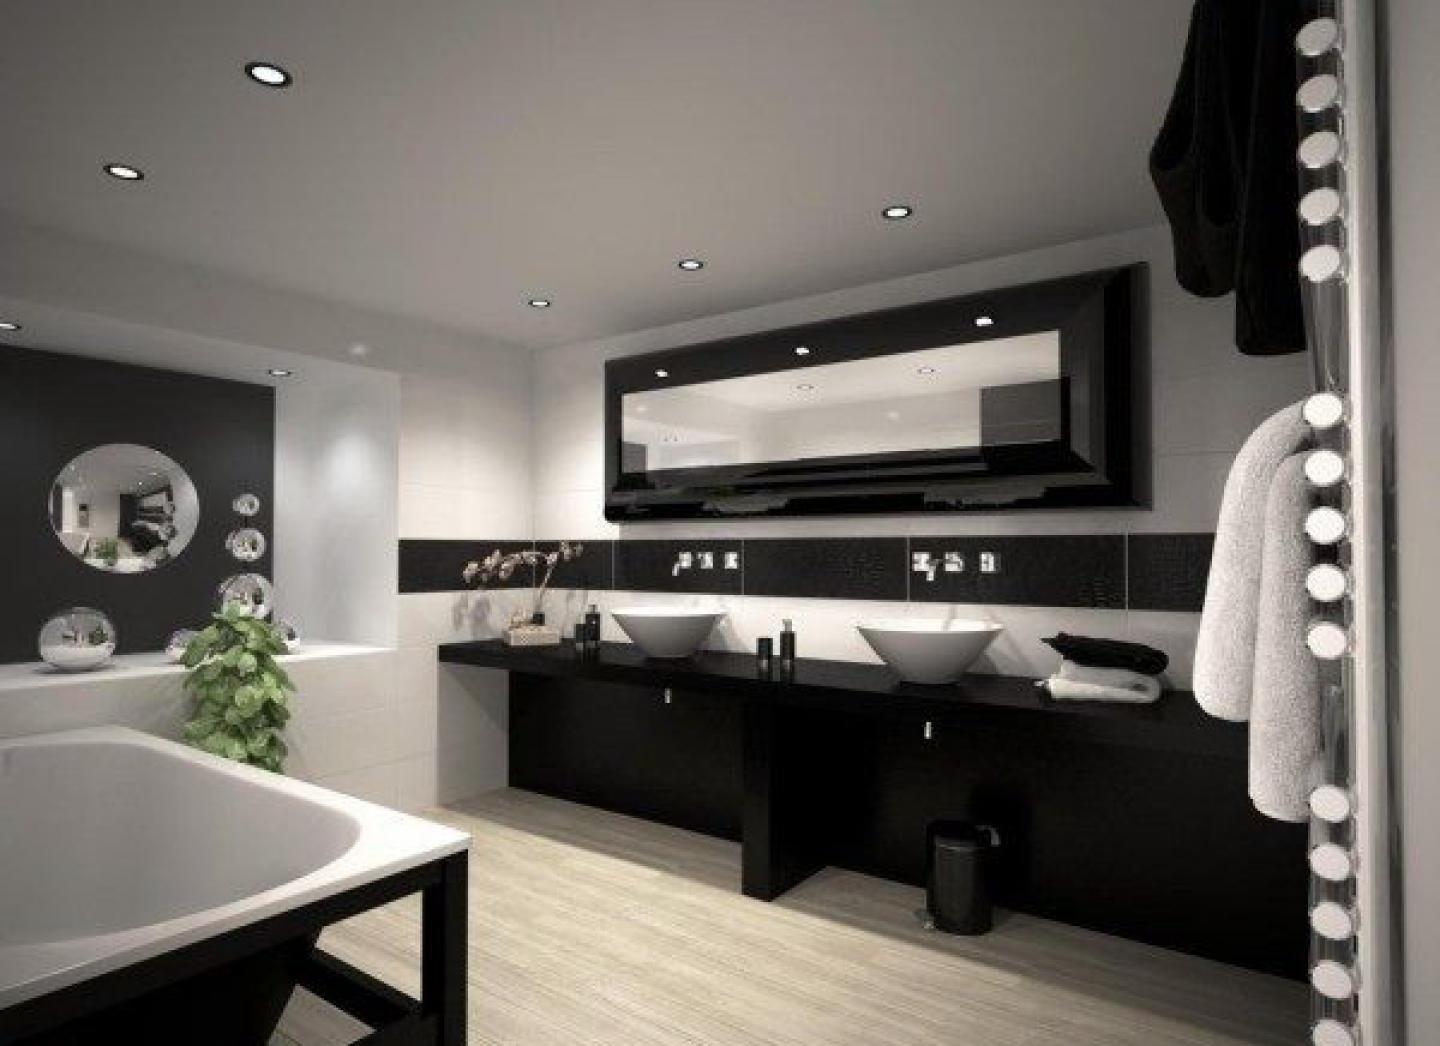 photo gallery of the master bathroom interior design ideas